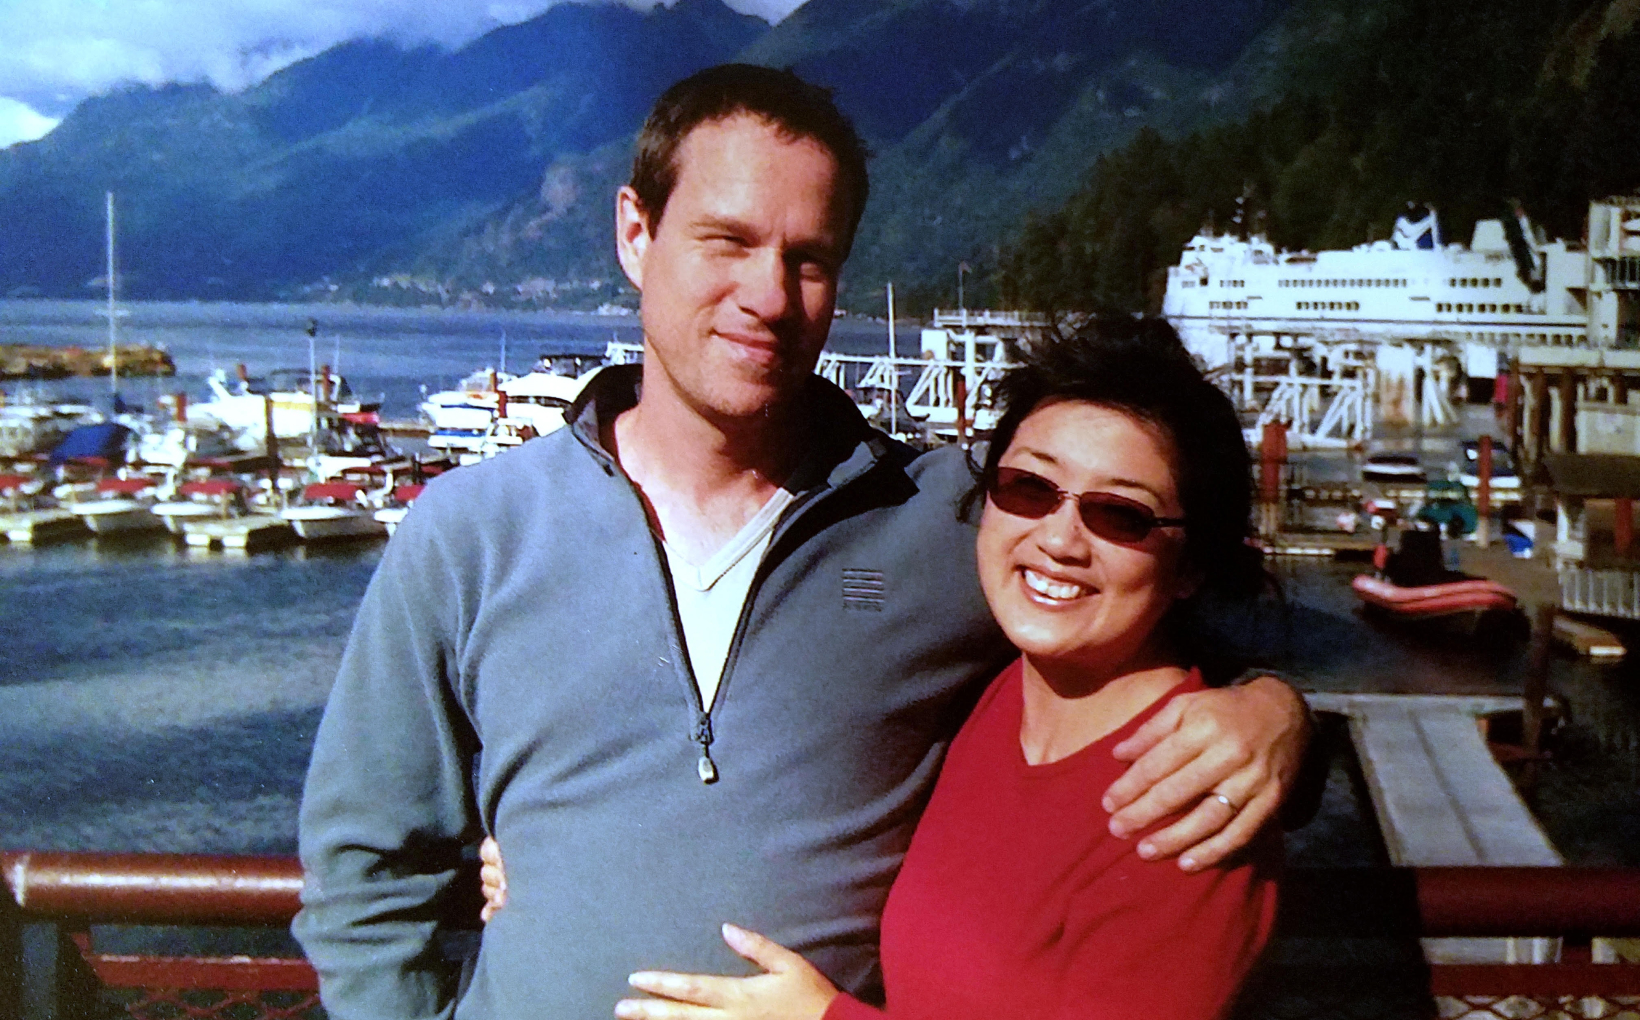 Yuki standing at a harbour with her husband. They are both smiling to the camera and embracing each other.